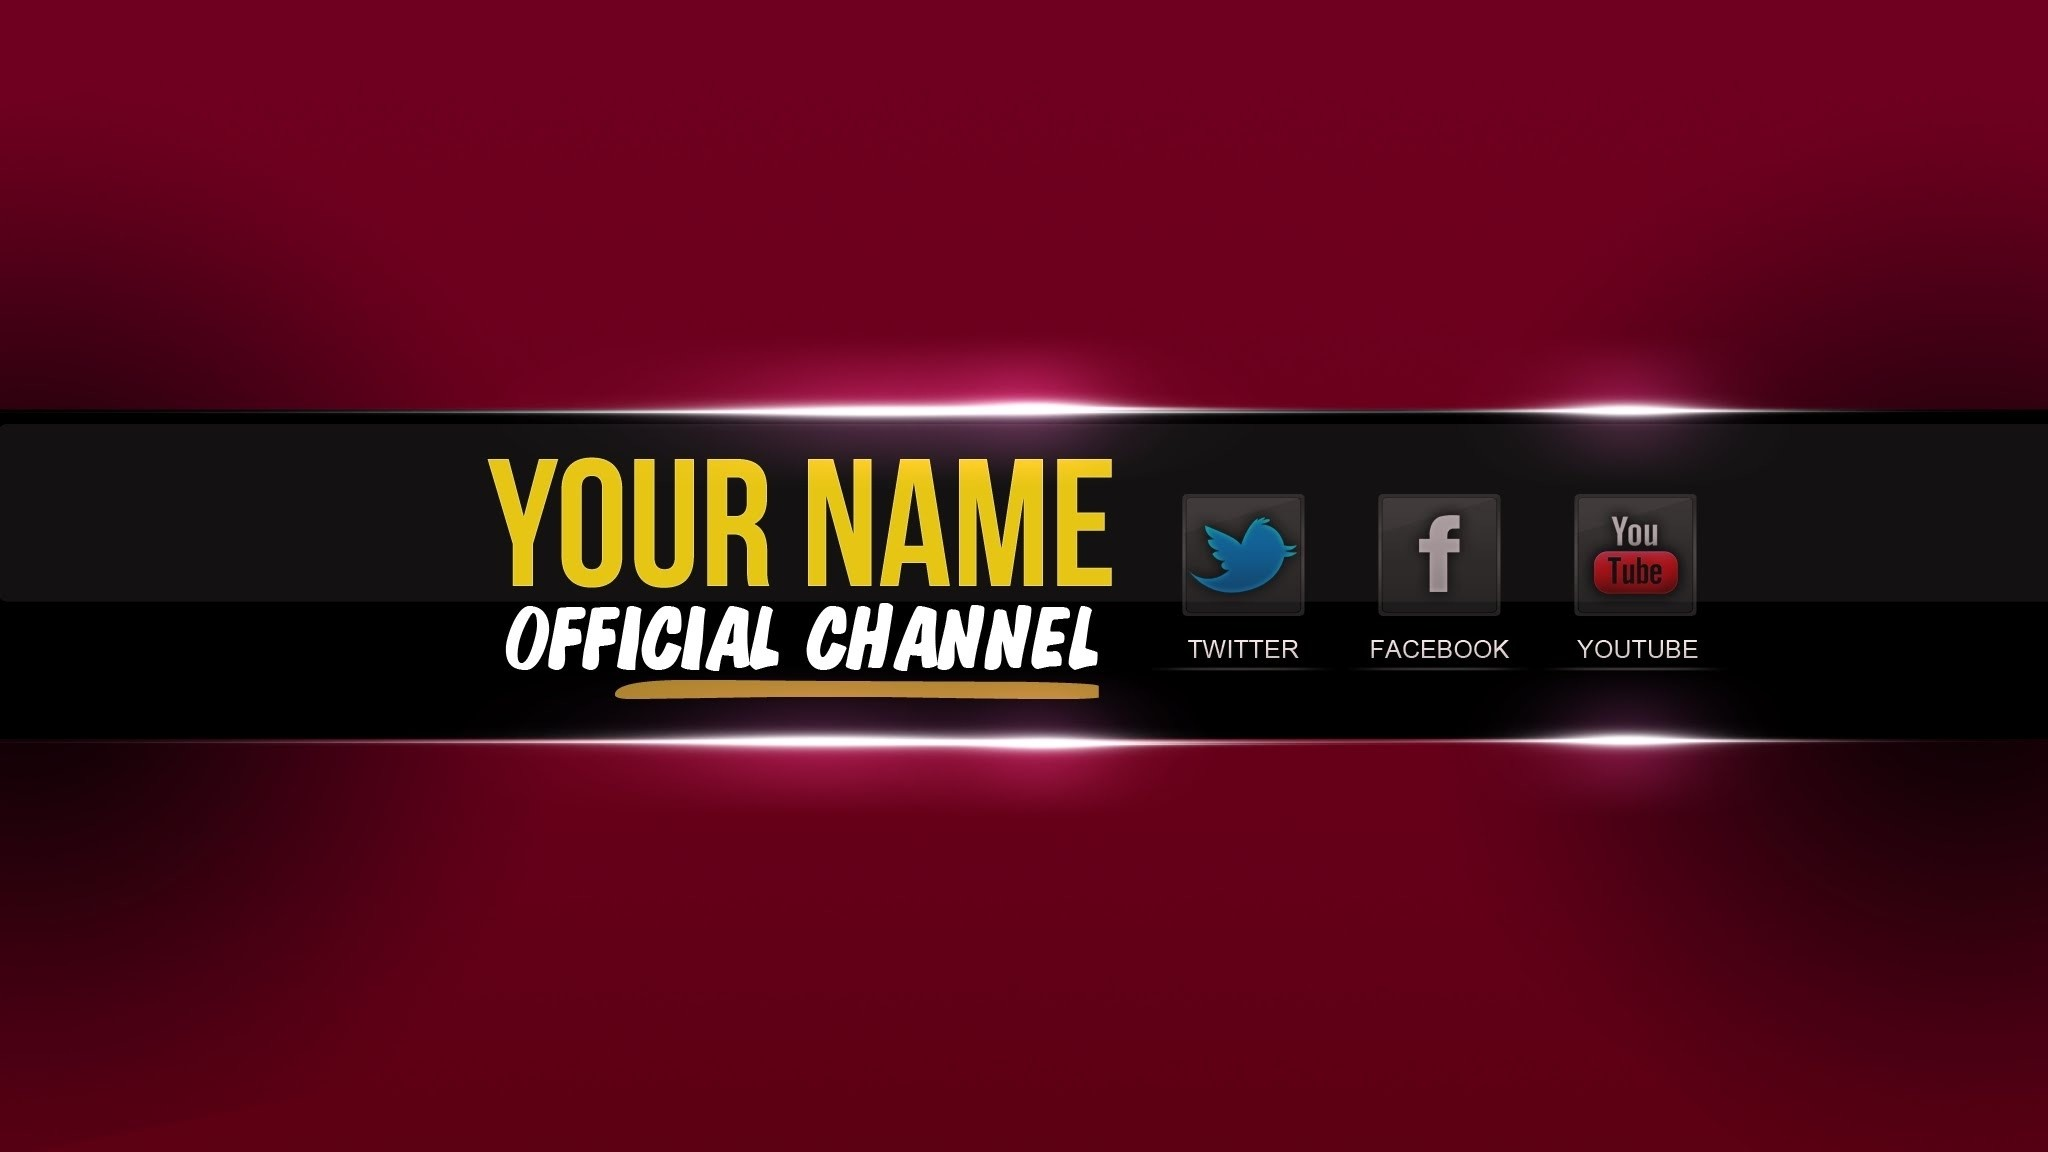 Youtube Banner Template Psd   Cyberuse for Banner For Youtube 3991